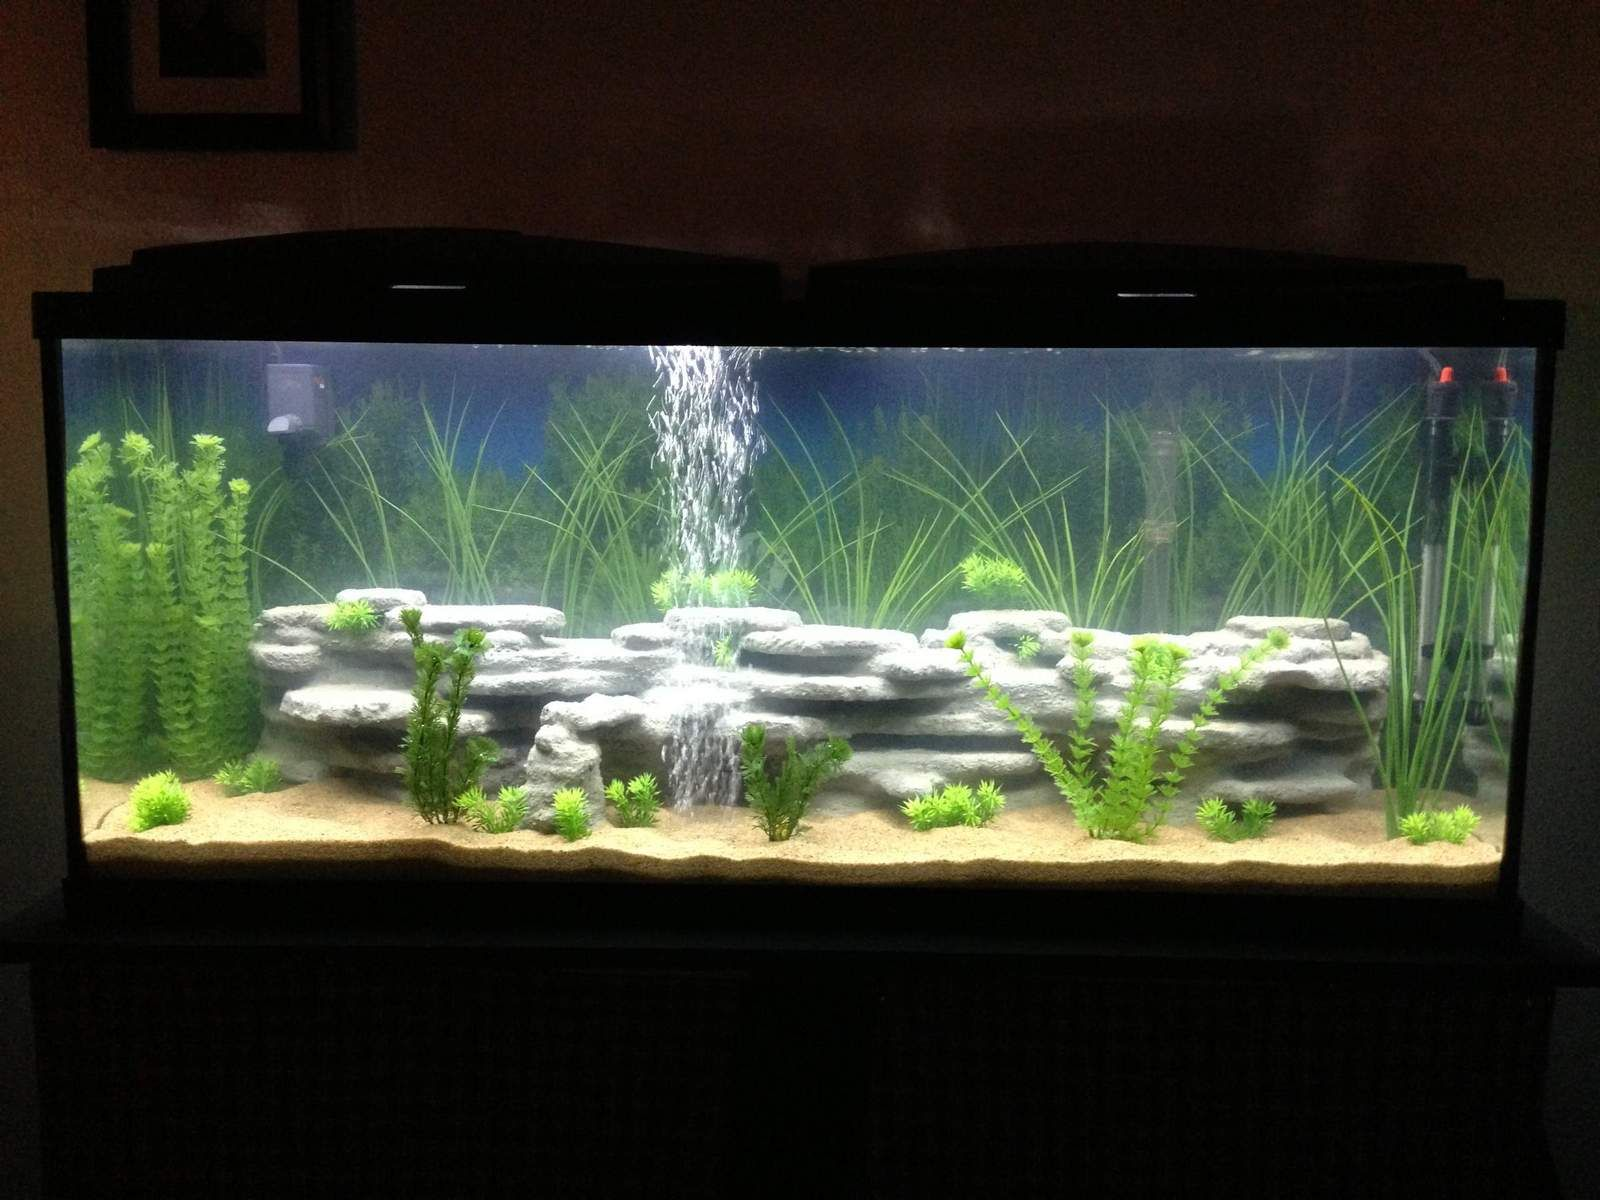 Image Result For 55 Gallon Fish Tank 3d Background Saltwater Fish Tanks 55 Gallon Tank Fish Tank